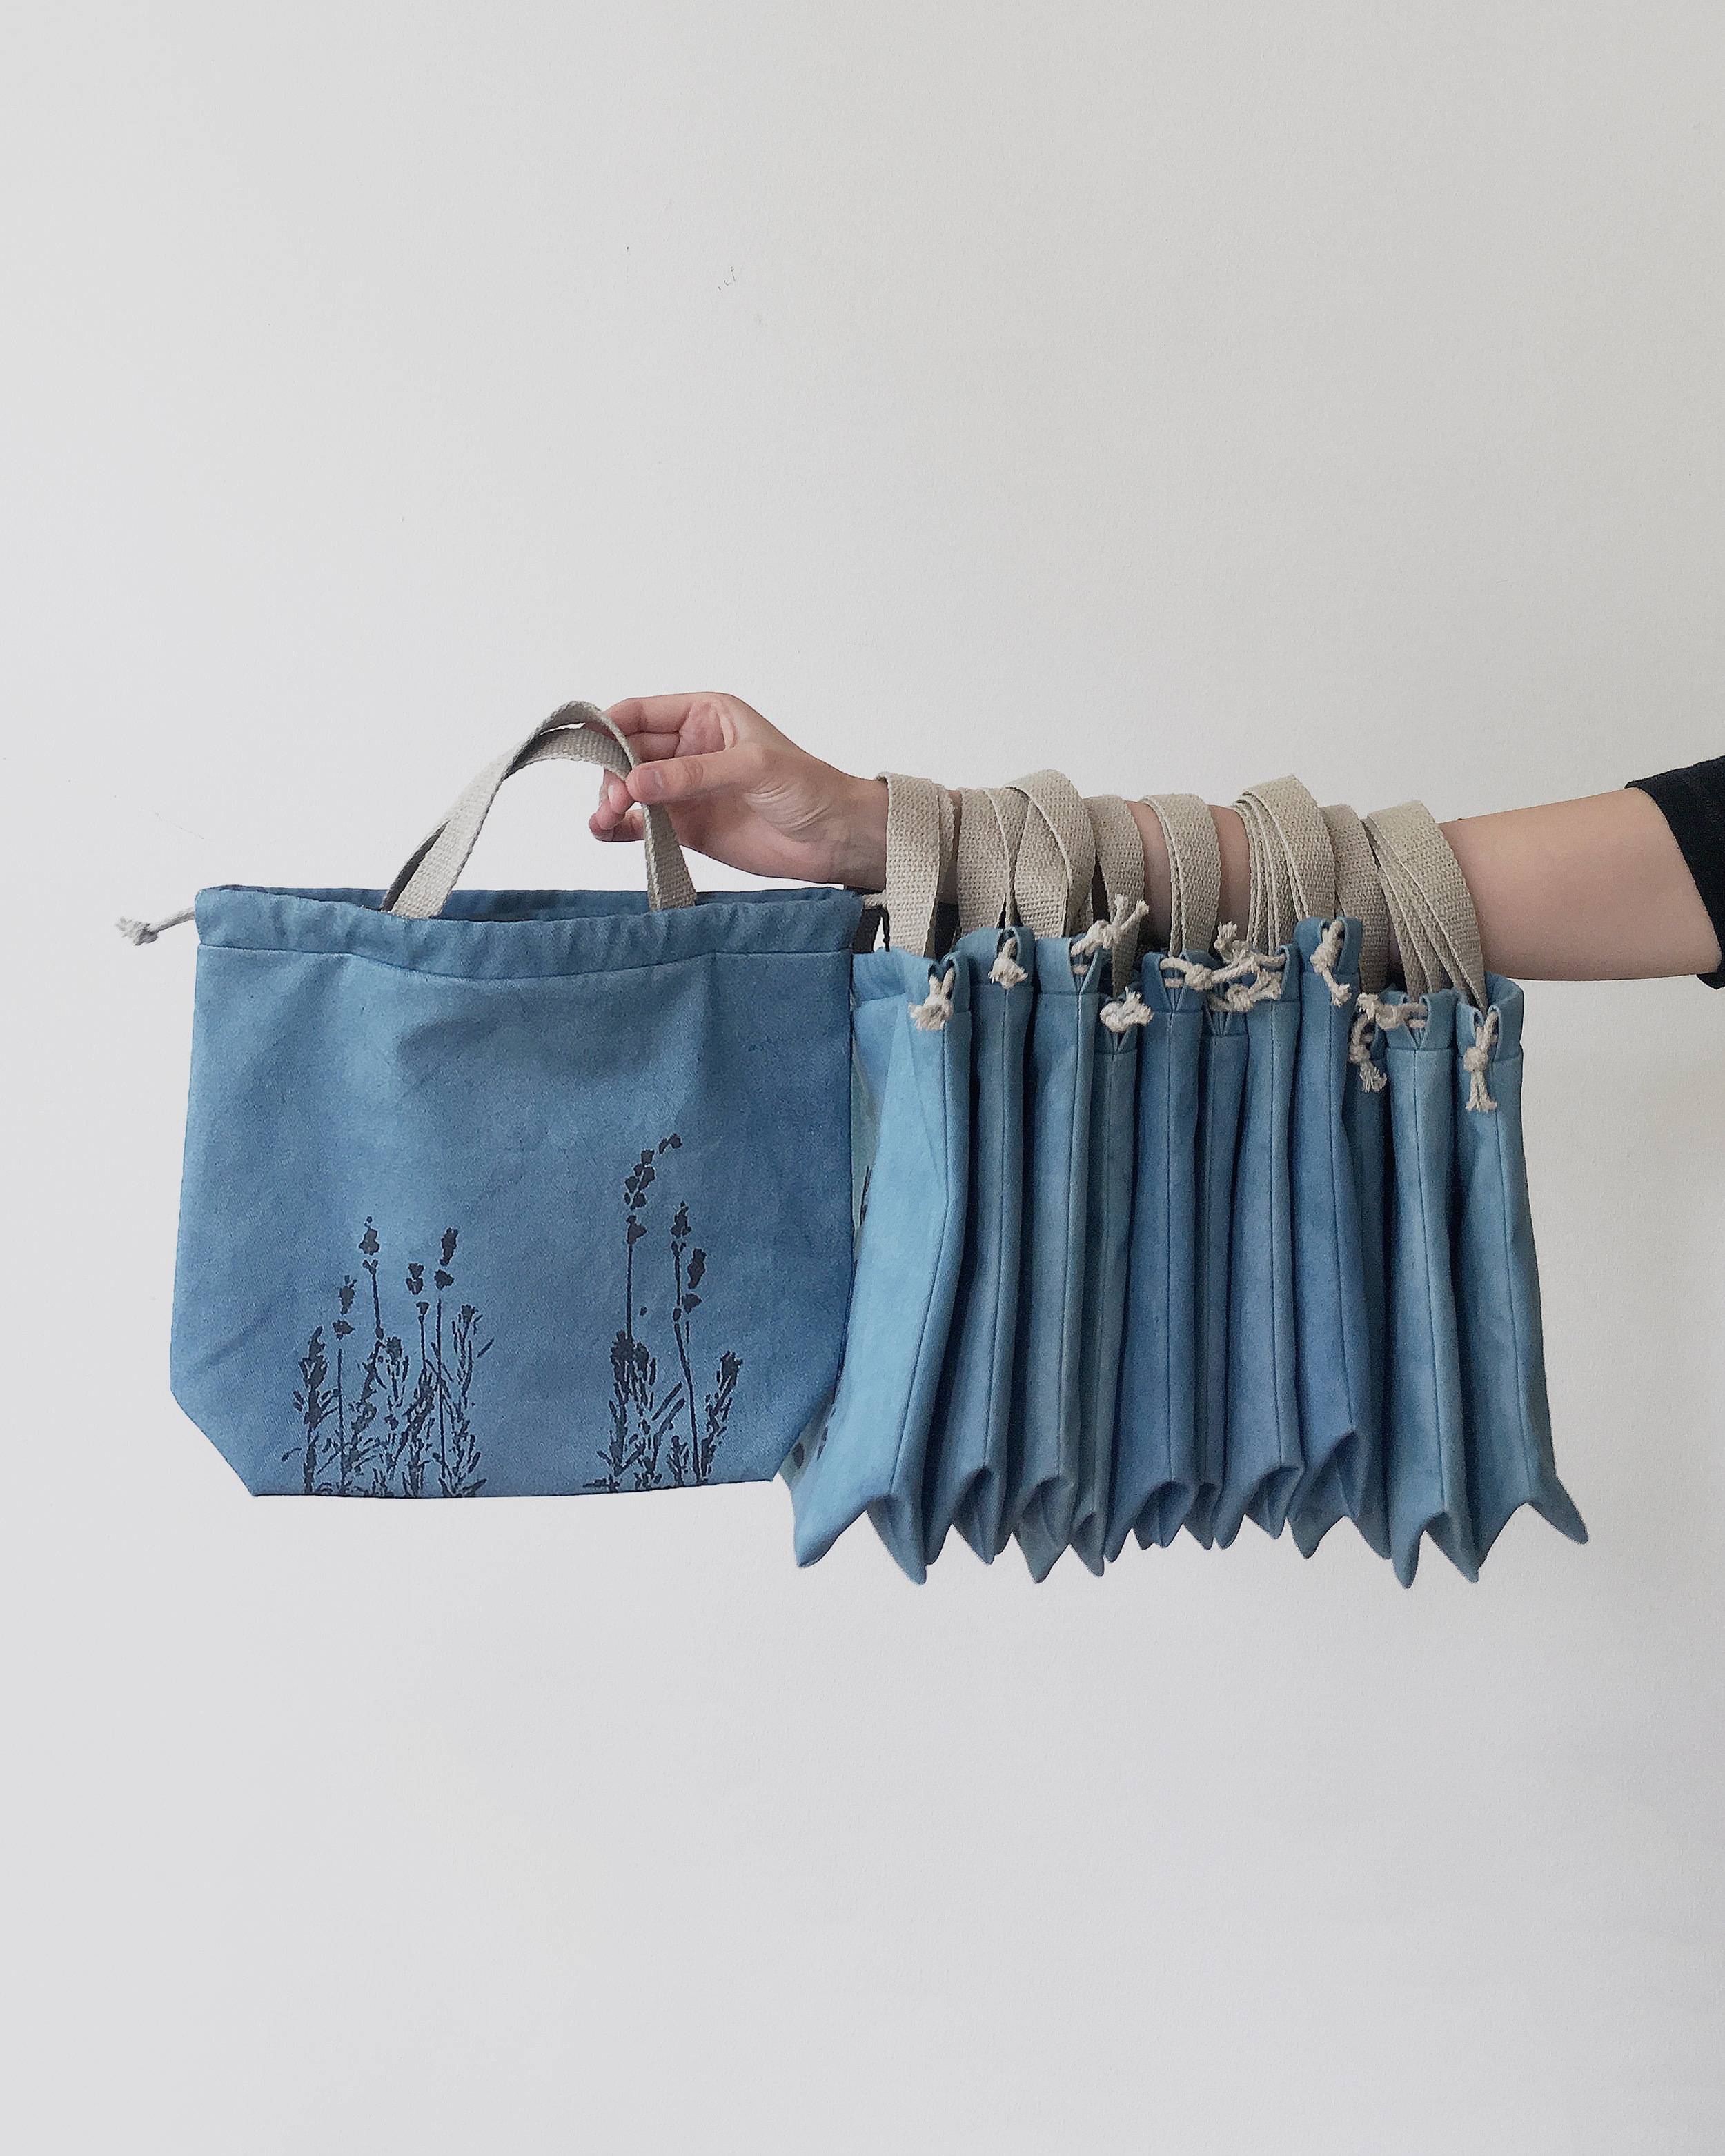 Project bags for Loop London, made by Kaliko and dyed with organic woad vat